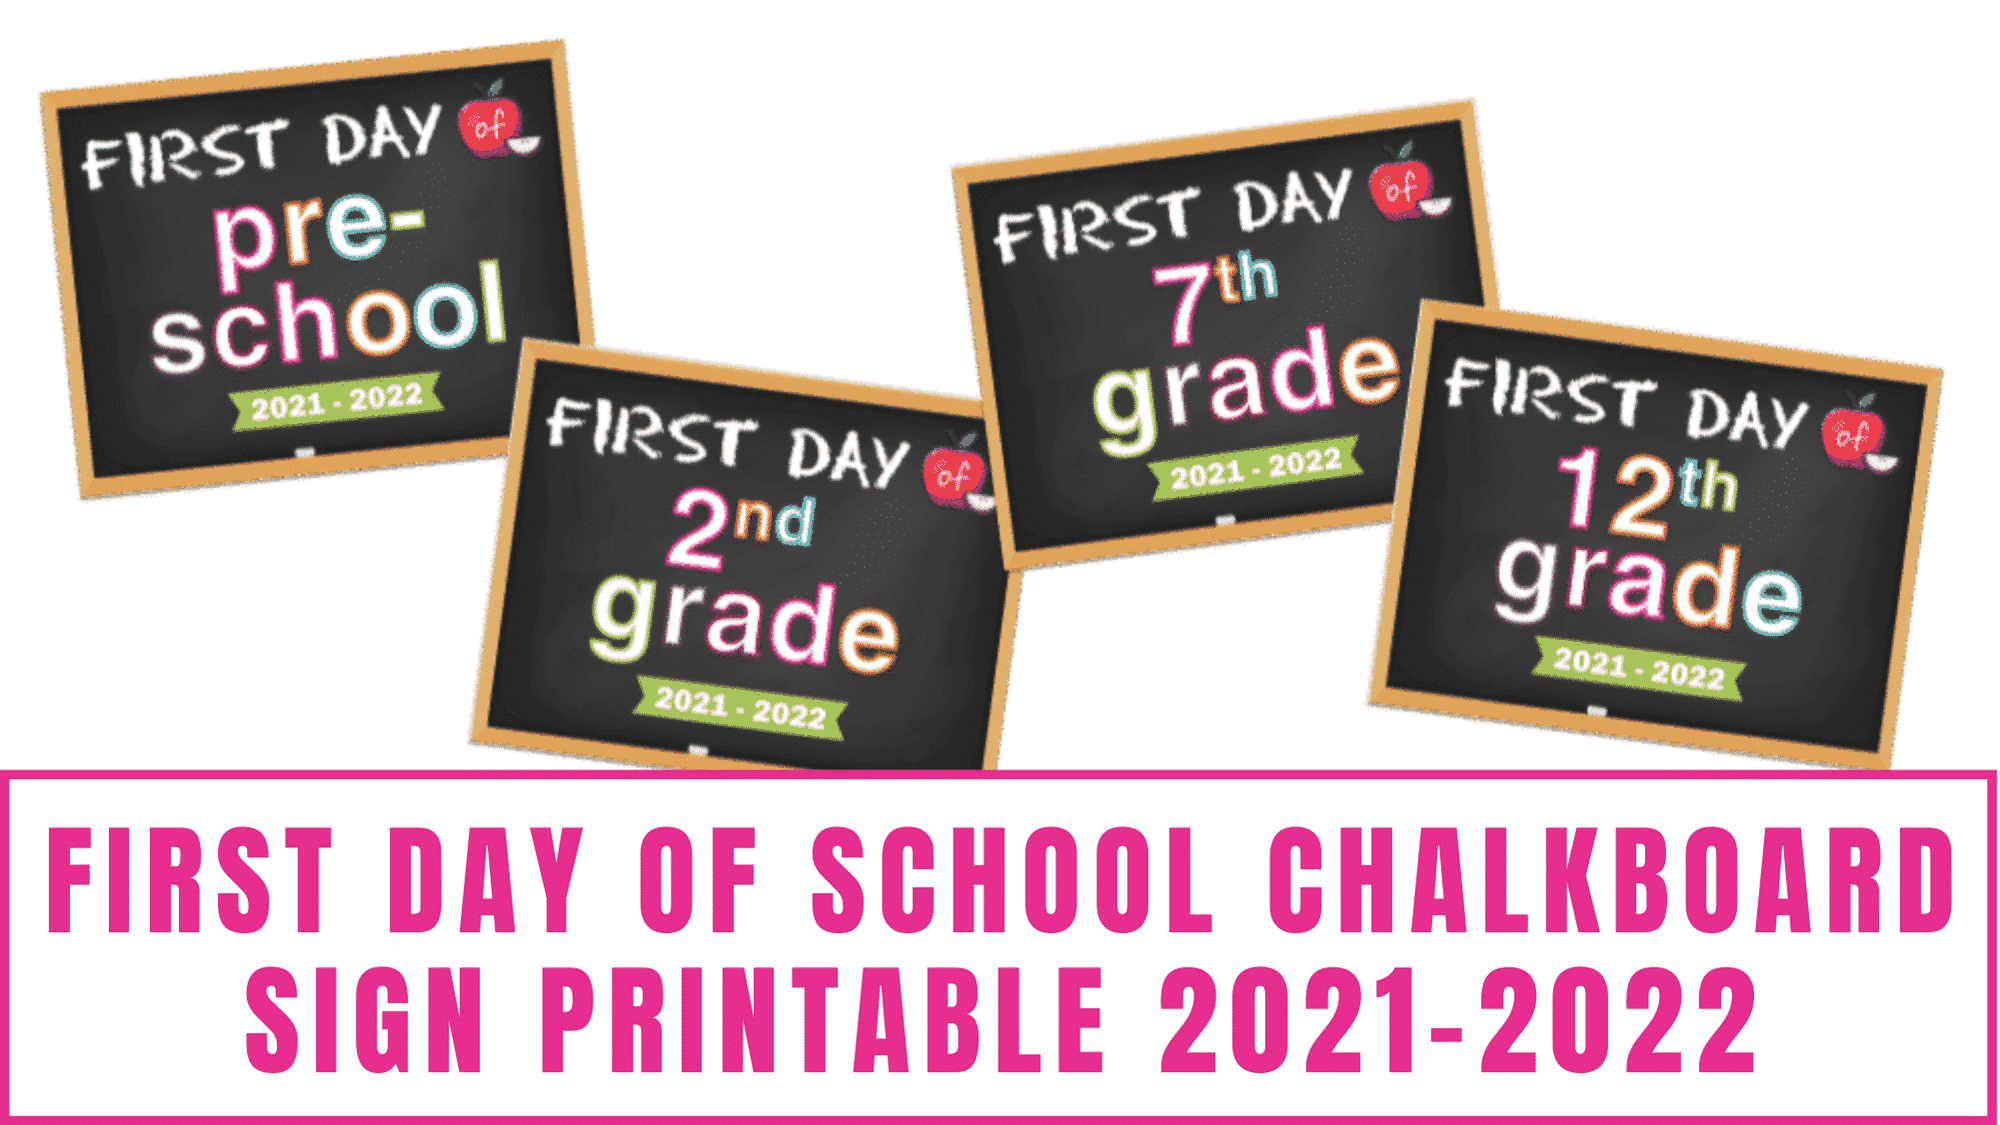 Commemorate your student's first day of school by taking their picture holding this first day of school chalkboard sign printable 2021-2022.